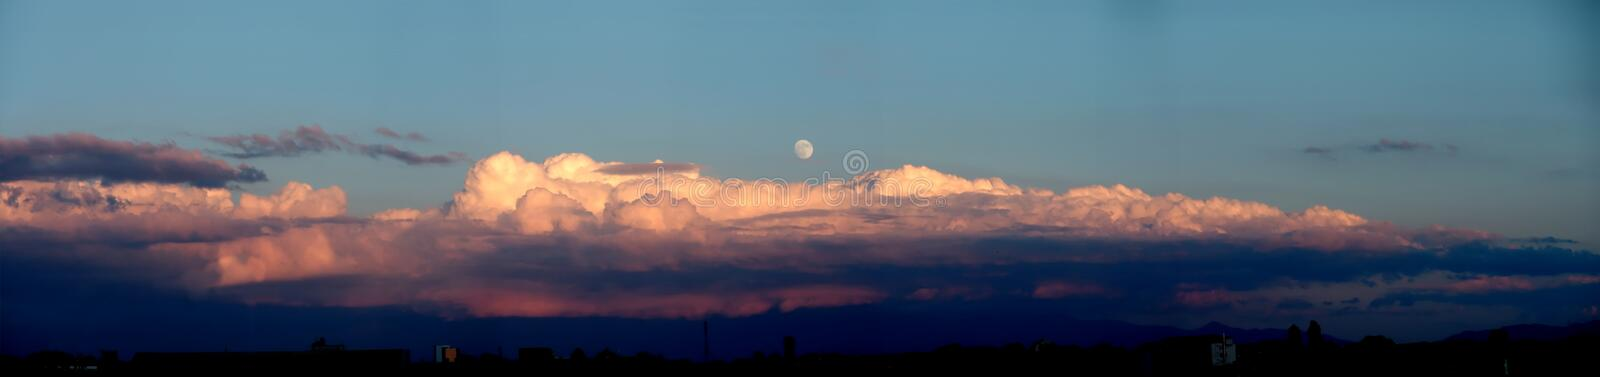 Download Panoramic Image - Full Moon Stock Photo - Image of orange, night: 156384